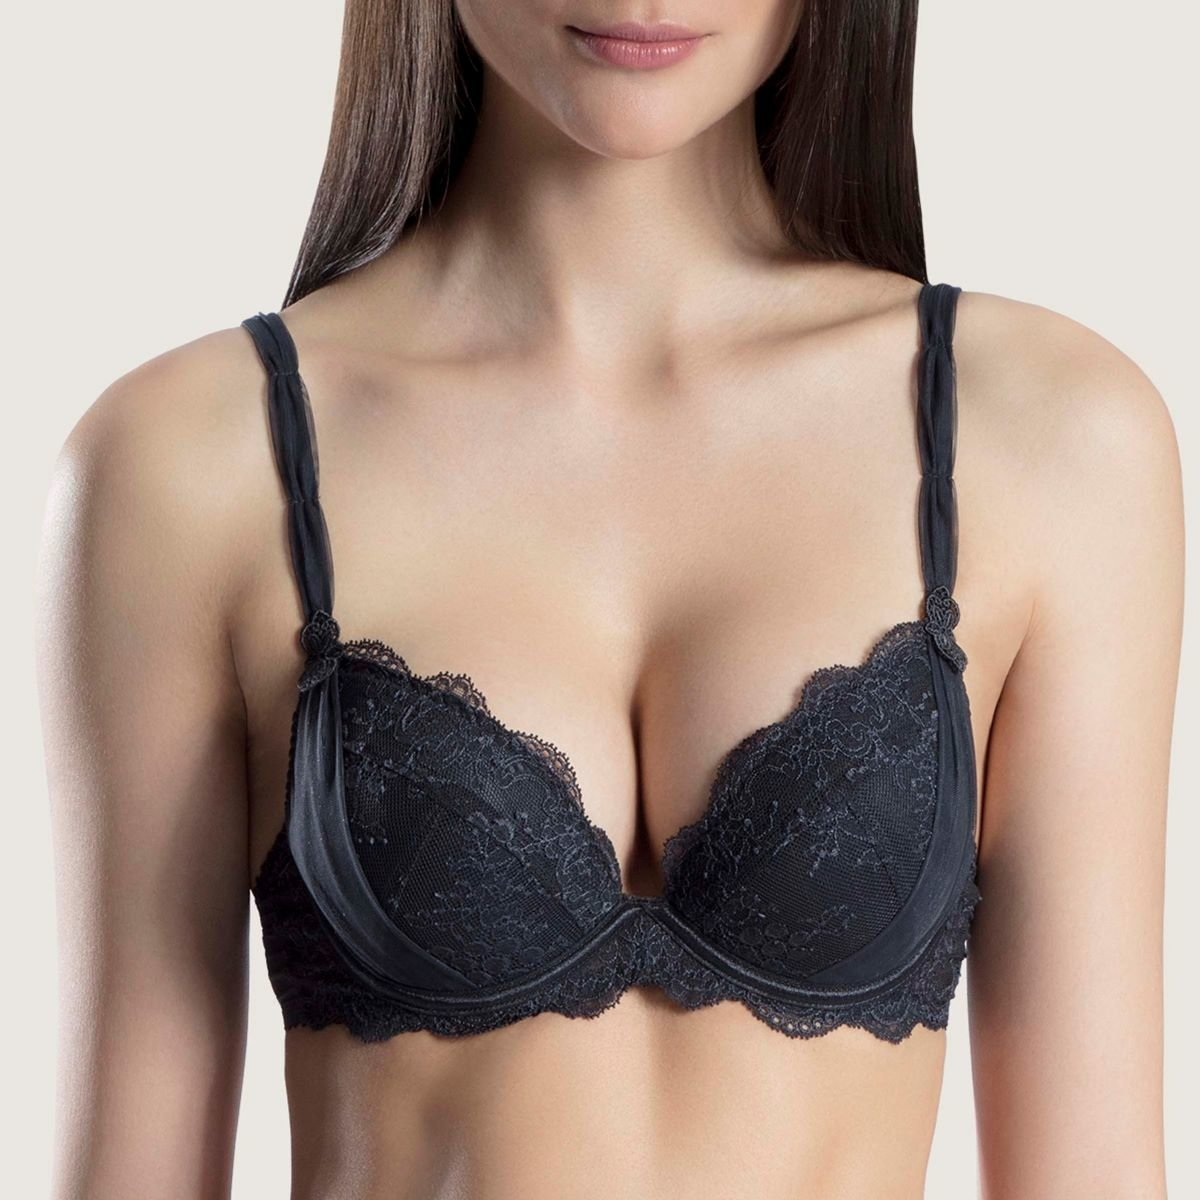 Aubade Lace Push-up Bra with Removable Pad (DA18)